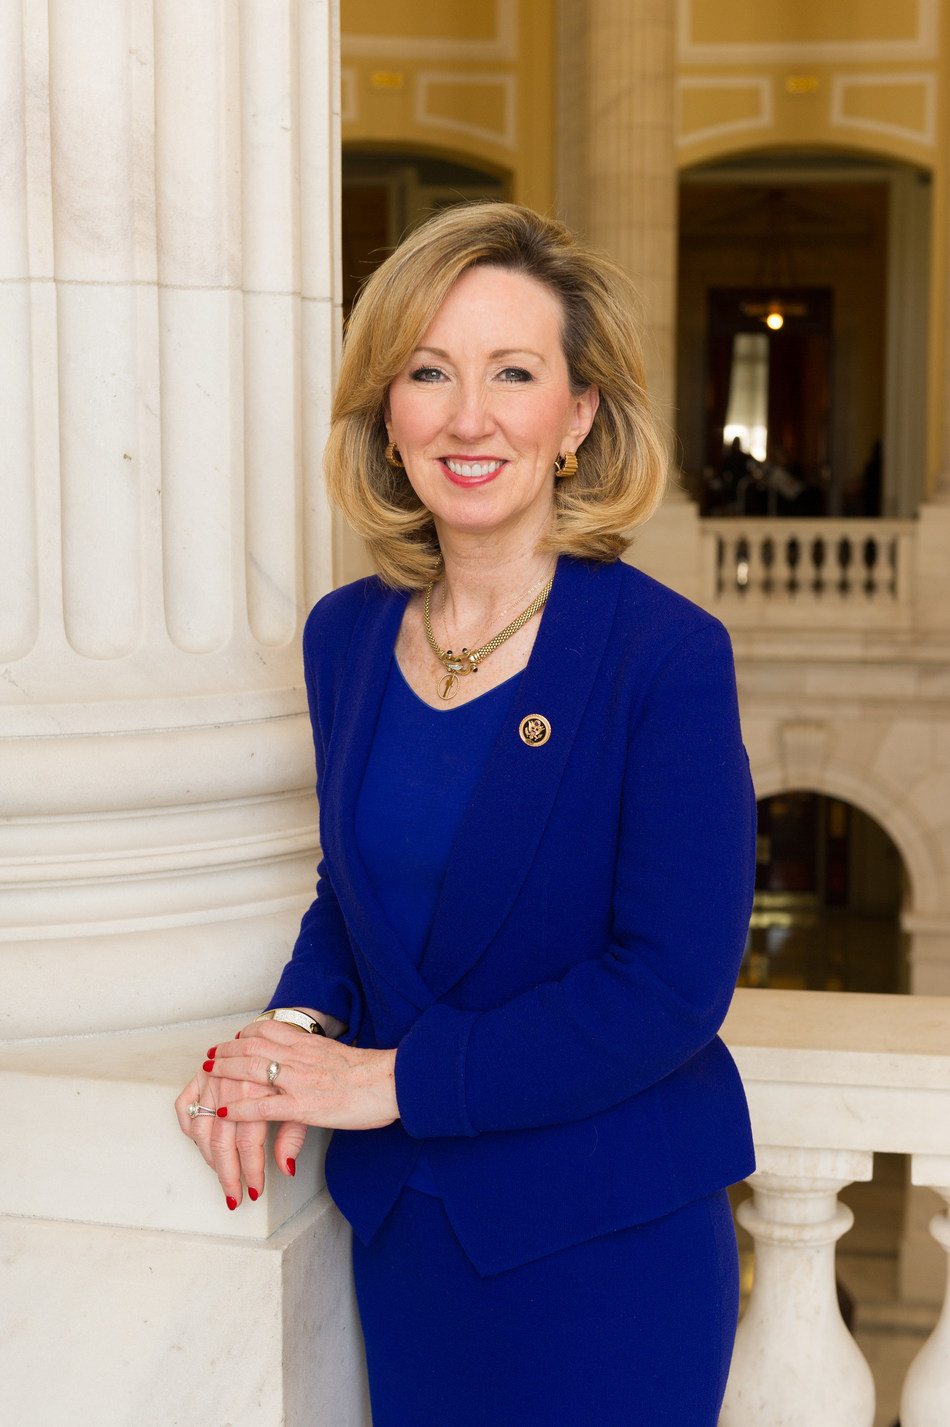 Former Virginia Congresswoman Barbara Comstock has joined the Washington, D.C., office of Baker Donelson as a senior advisor in the Firm's Government Relations and Public Policy Group.